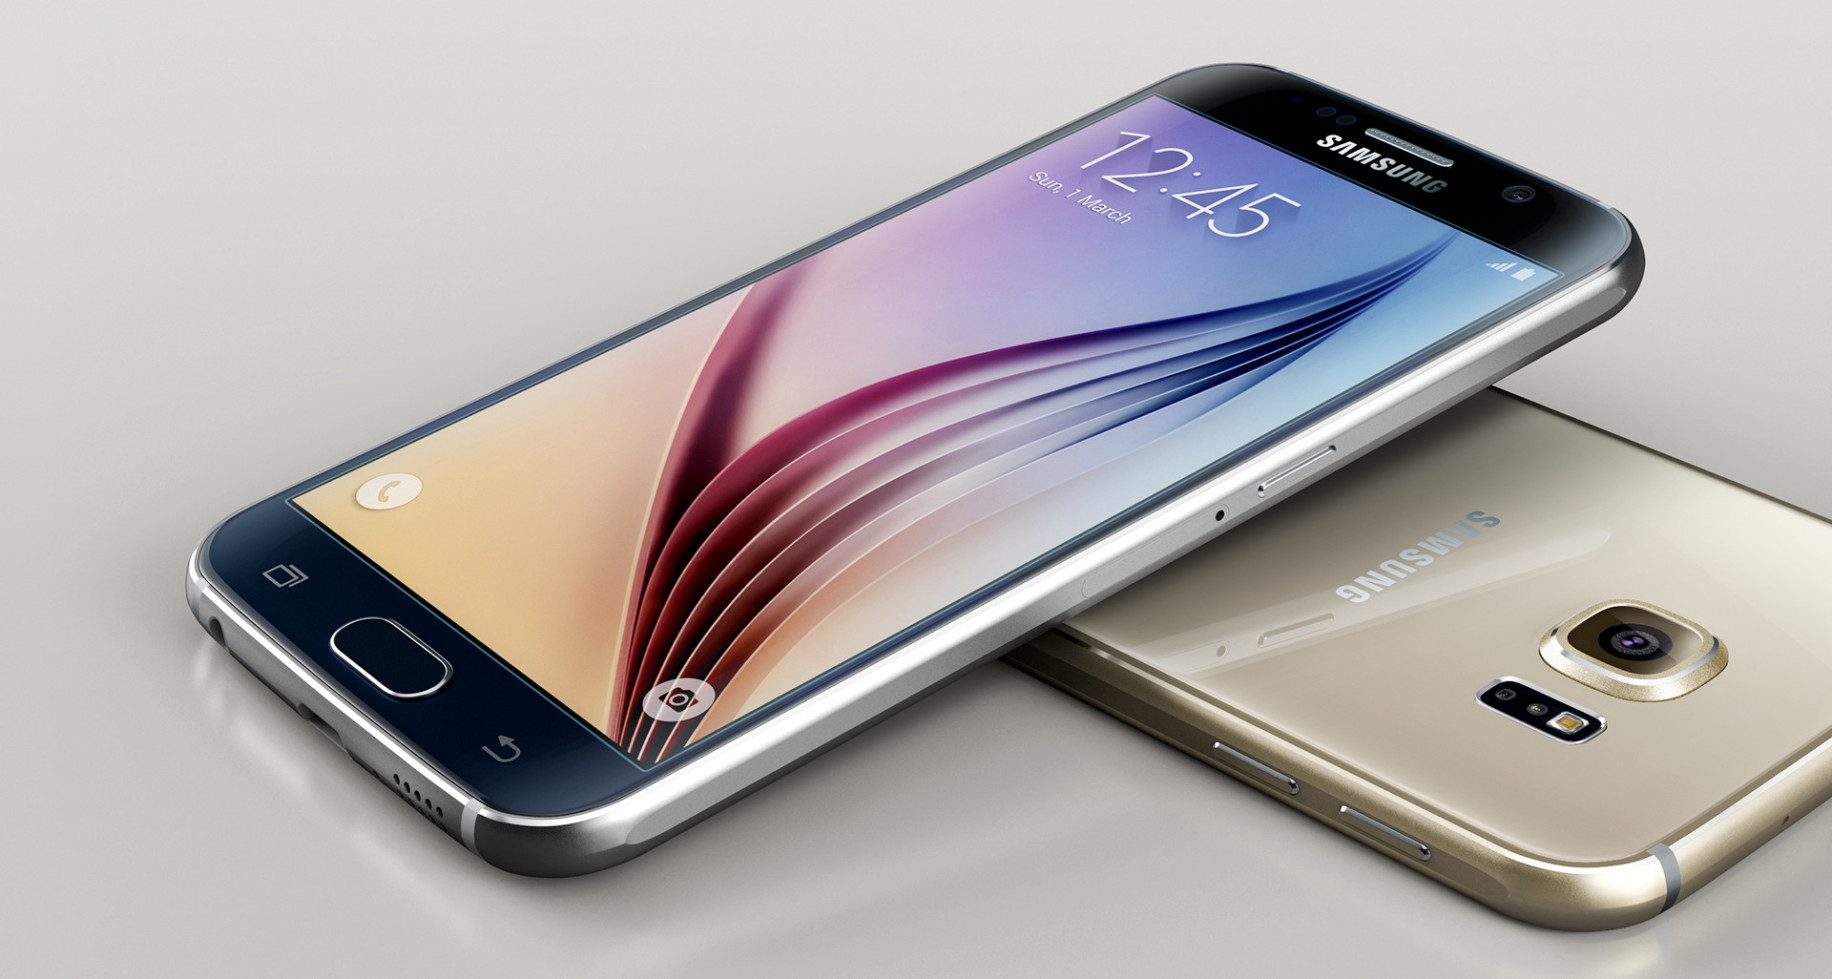 Review: Samsung Galaxy S6 / Galaxy S6 Edge smartphone